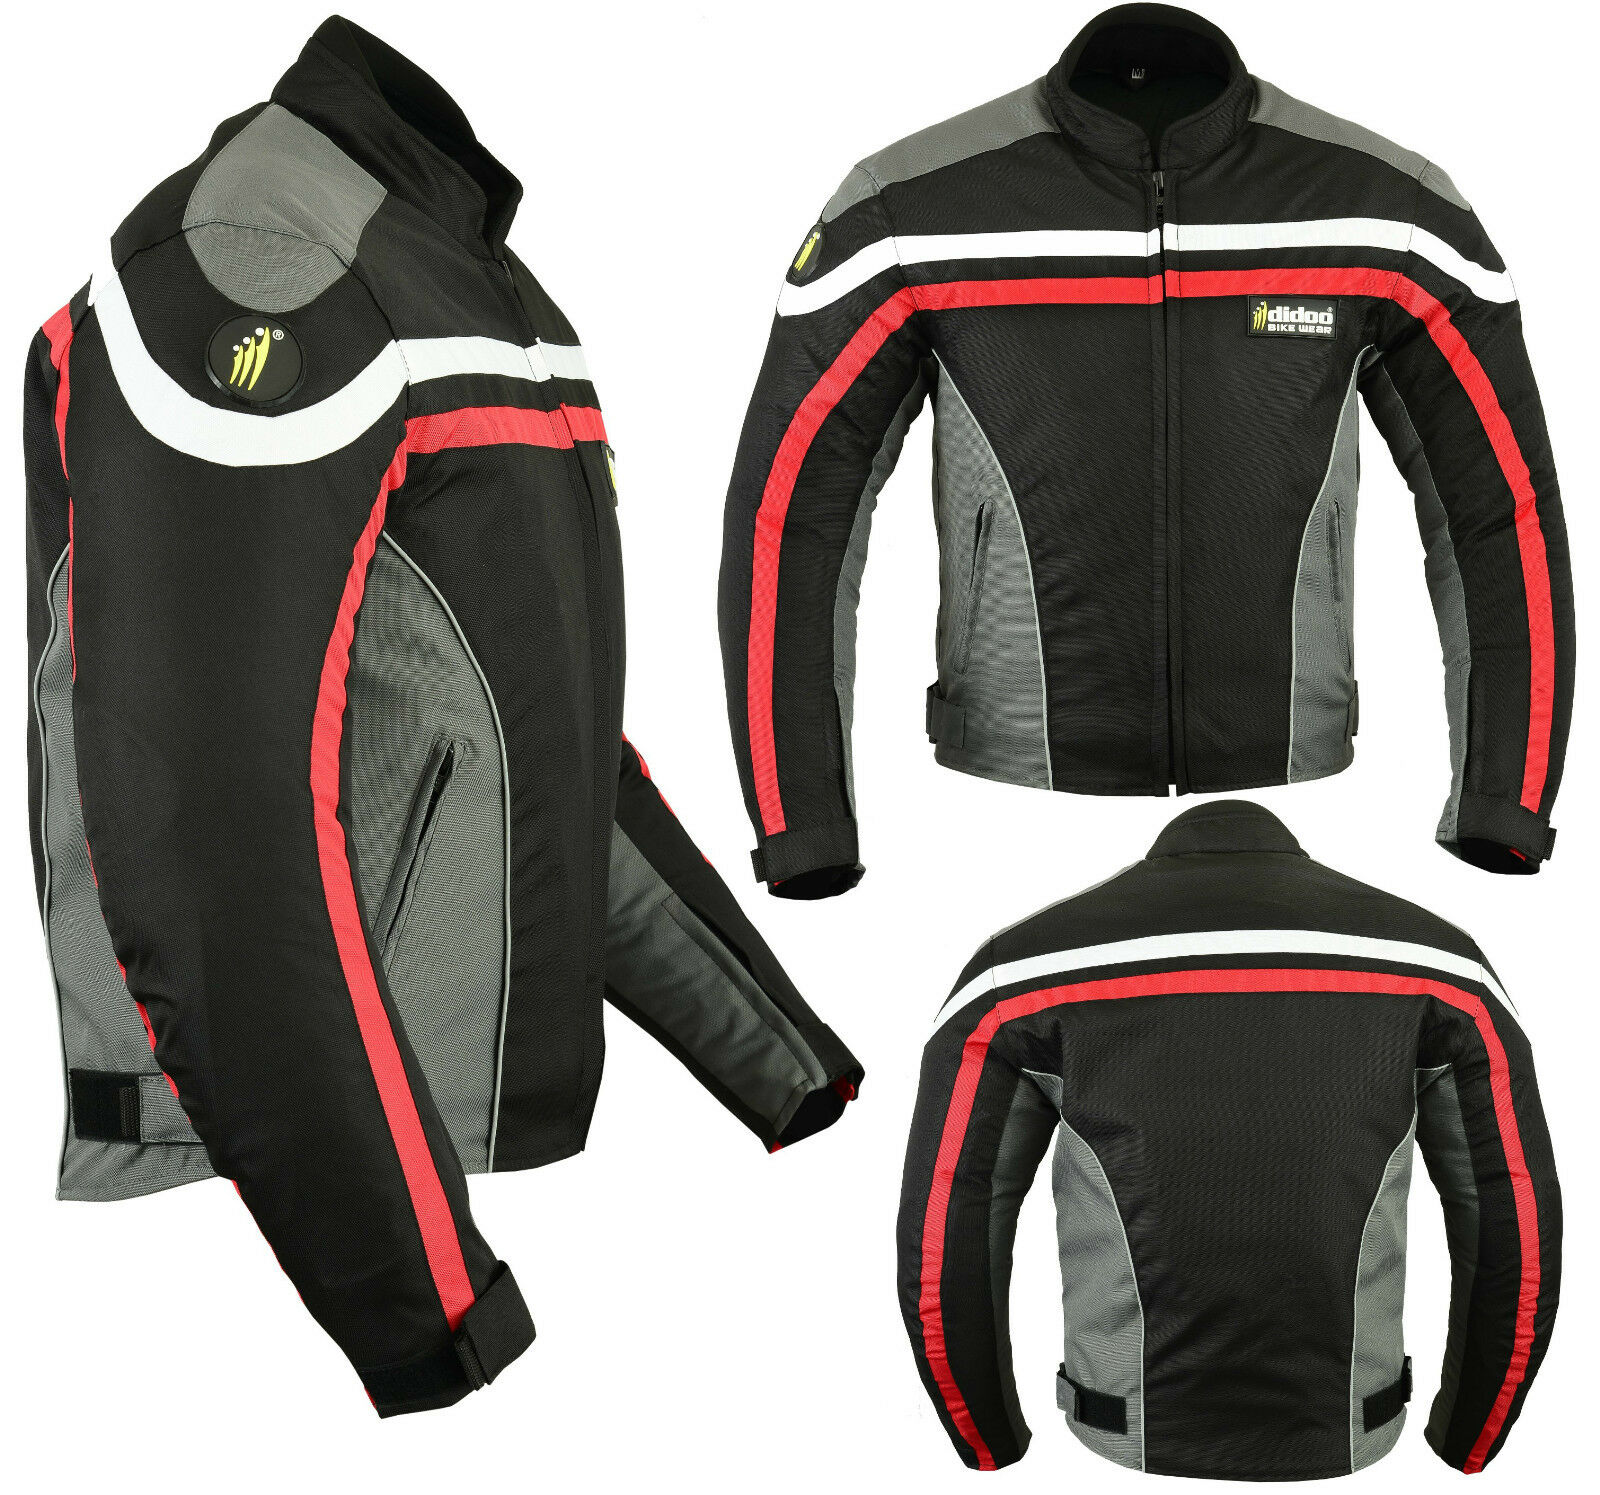 sports textile The sportswear and sports footwear industries are among the foremost innovators in the textile and clothing sector and have been a launching pad for many new id.